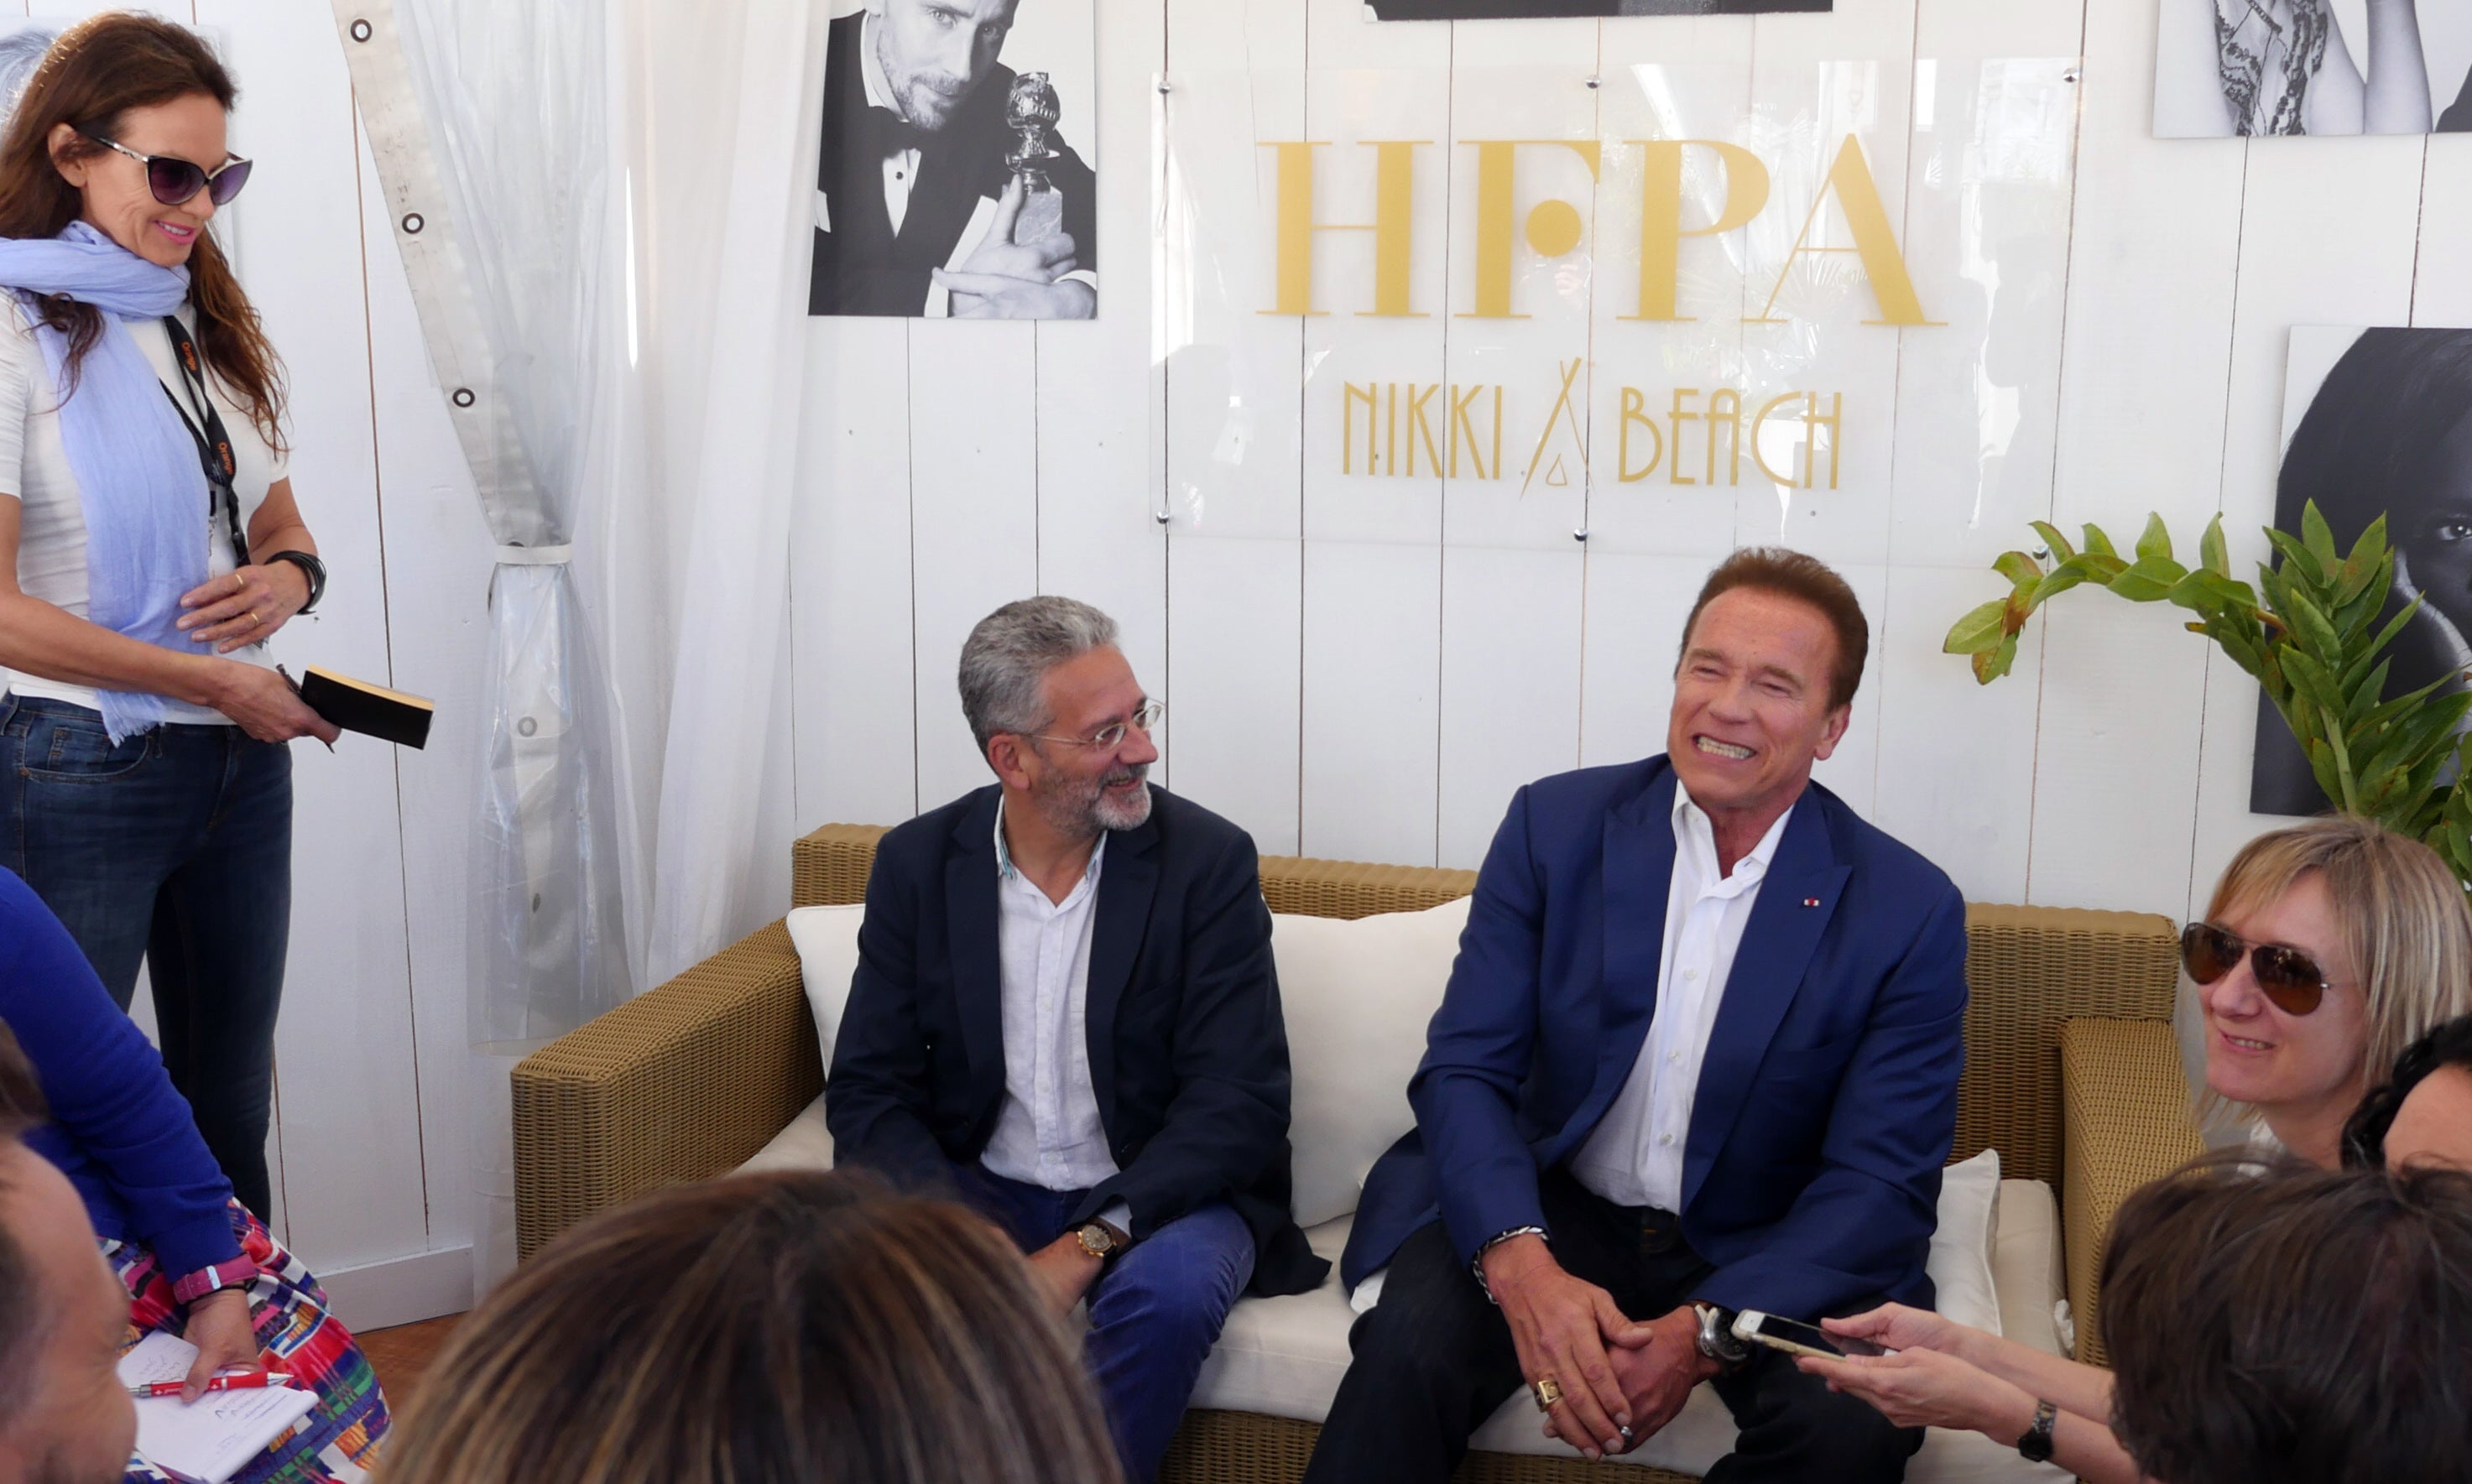 Arnold Schwarzenegger with HFPA